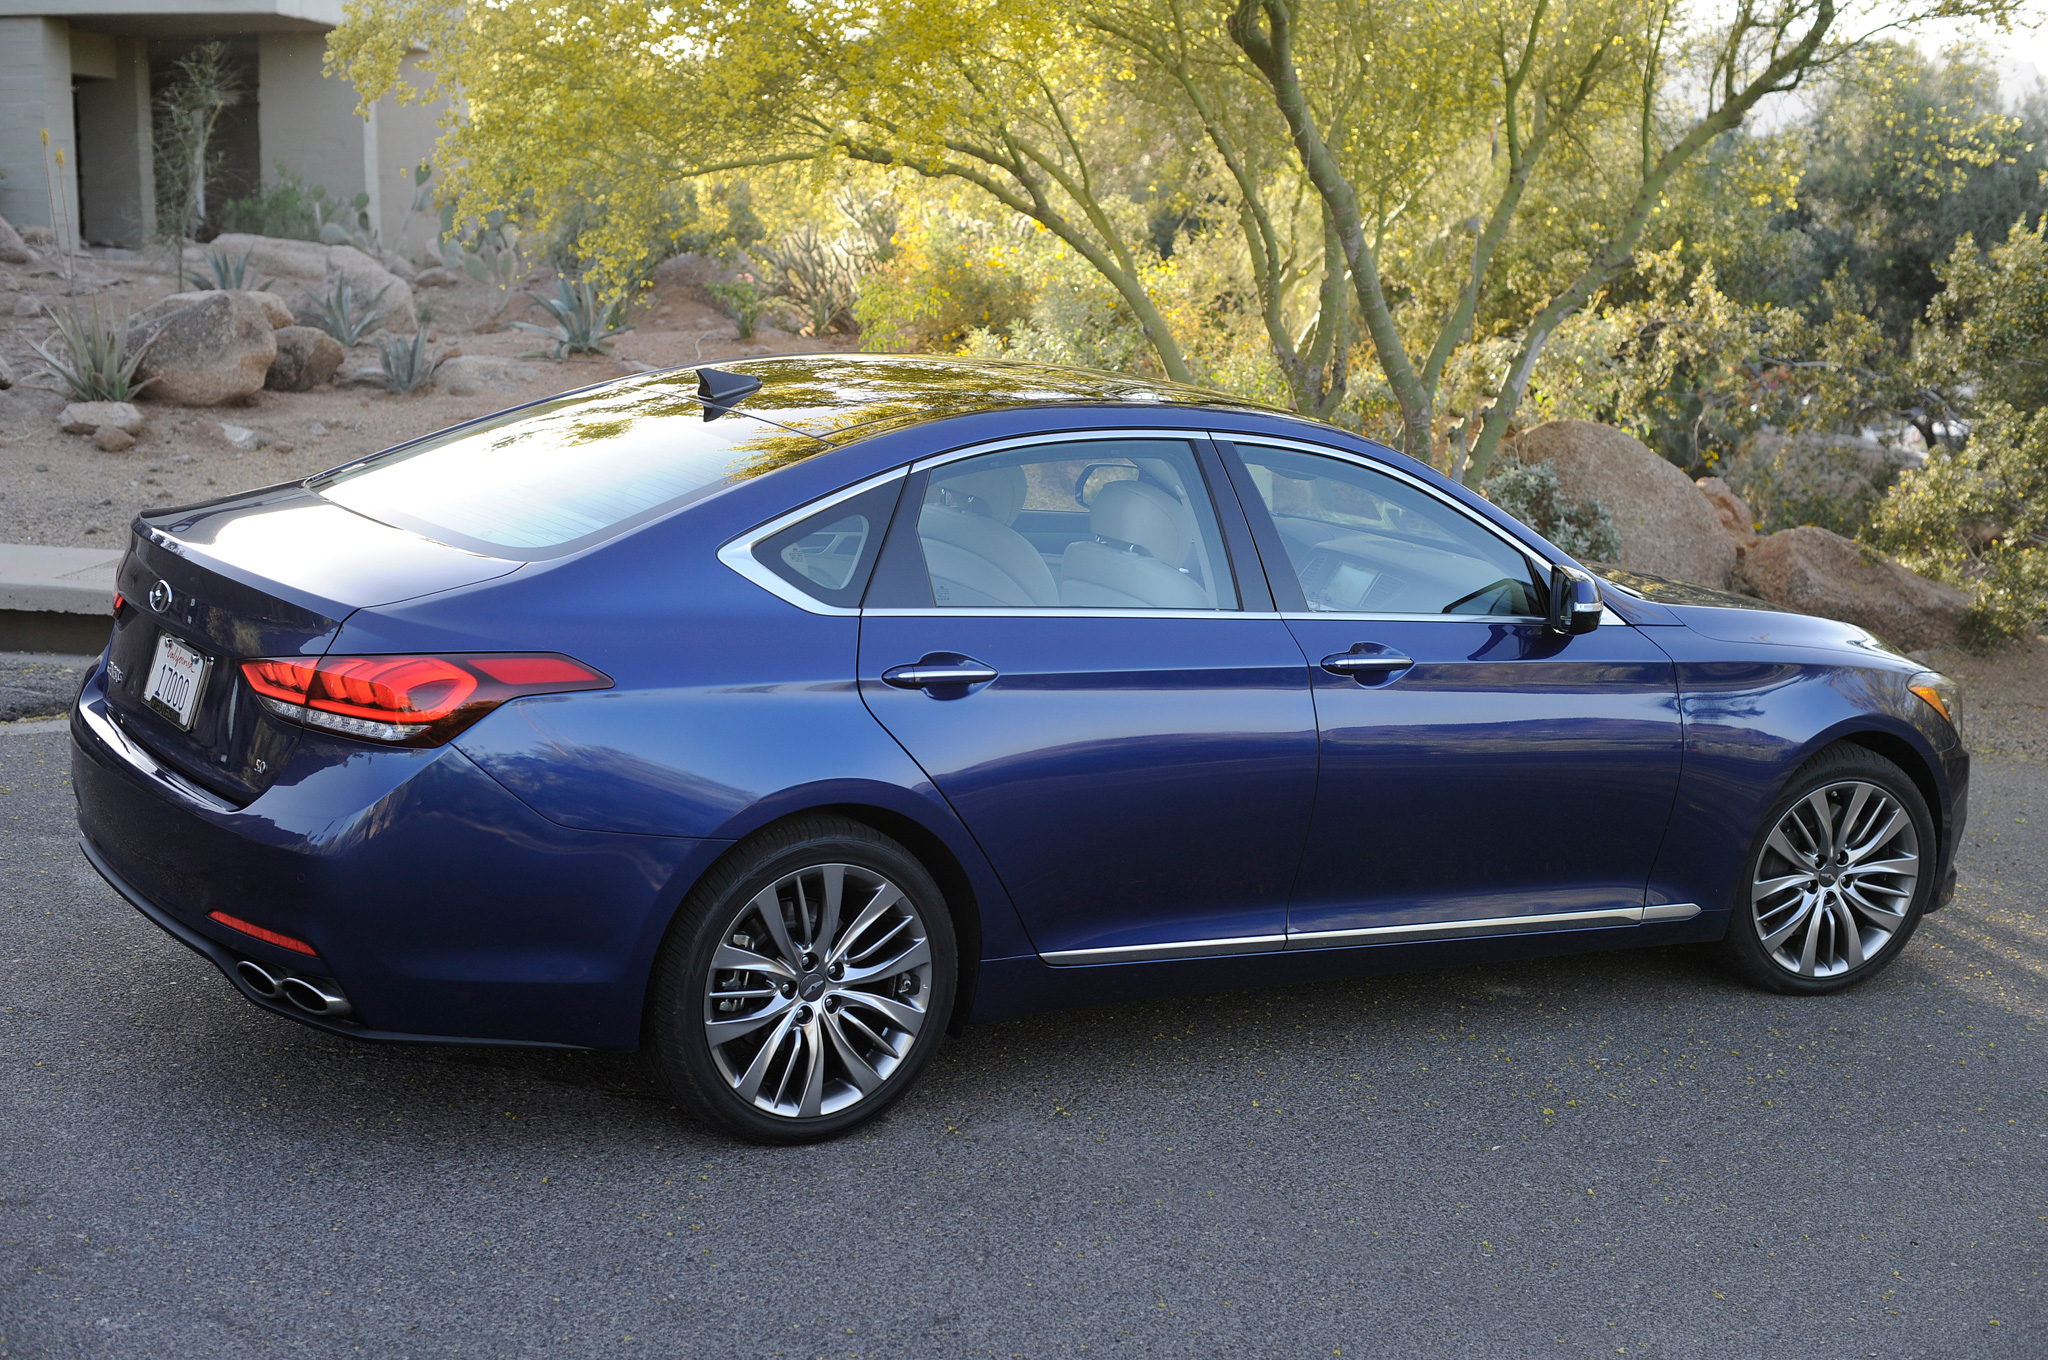 2015 Hyundai Genesis Sedan Rear Side View Blue Photo #65454899 ...